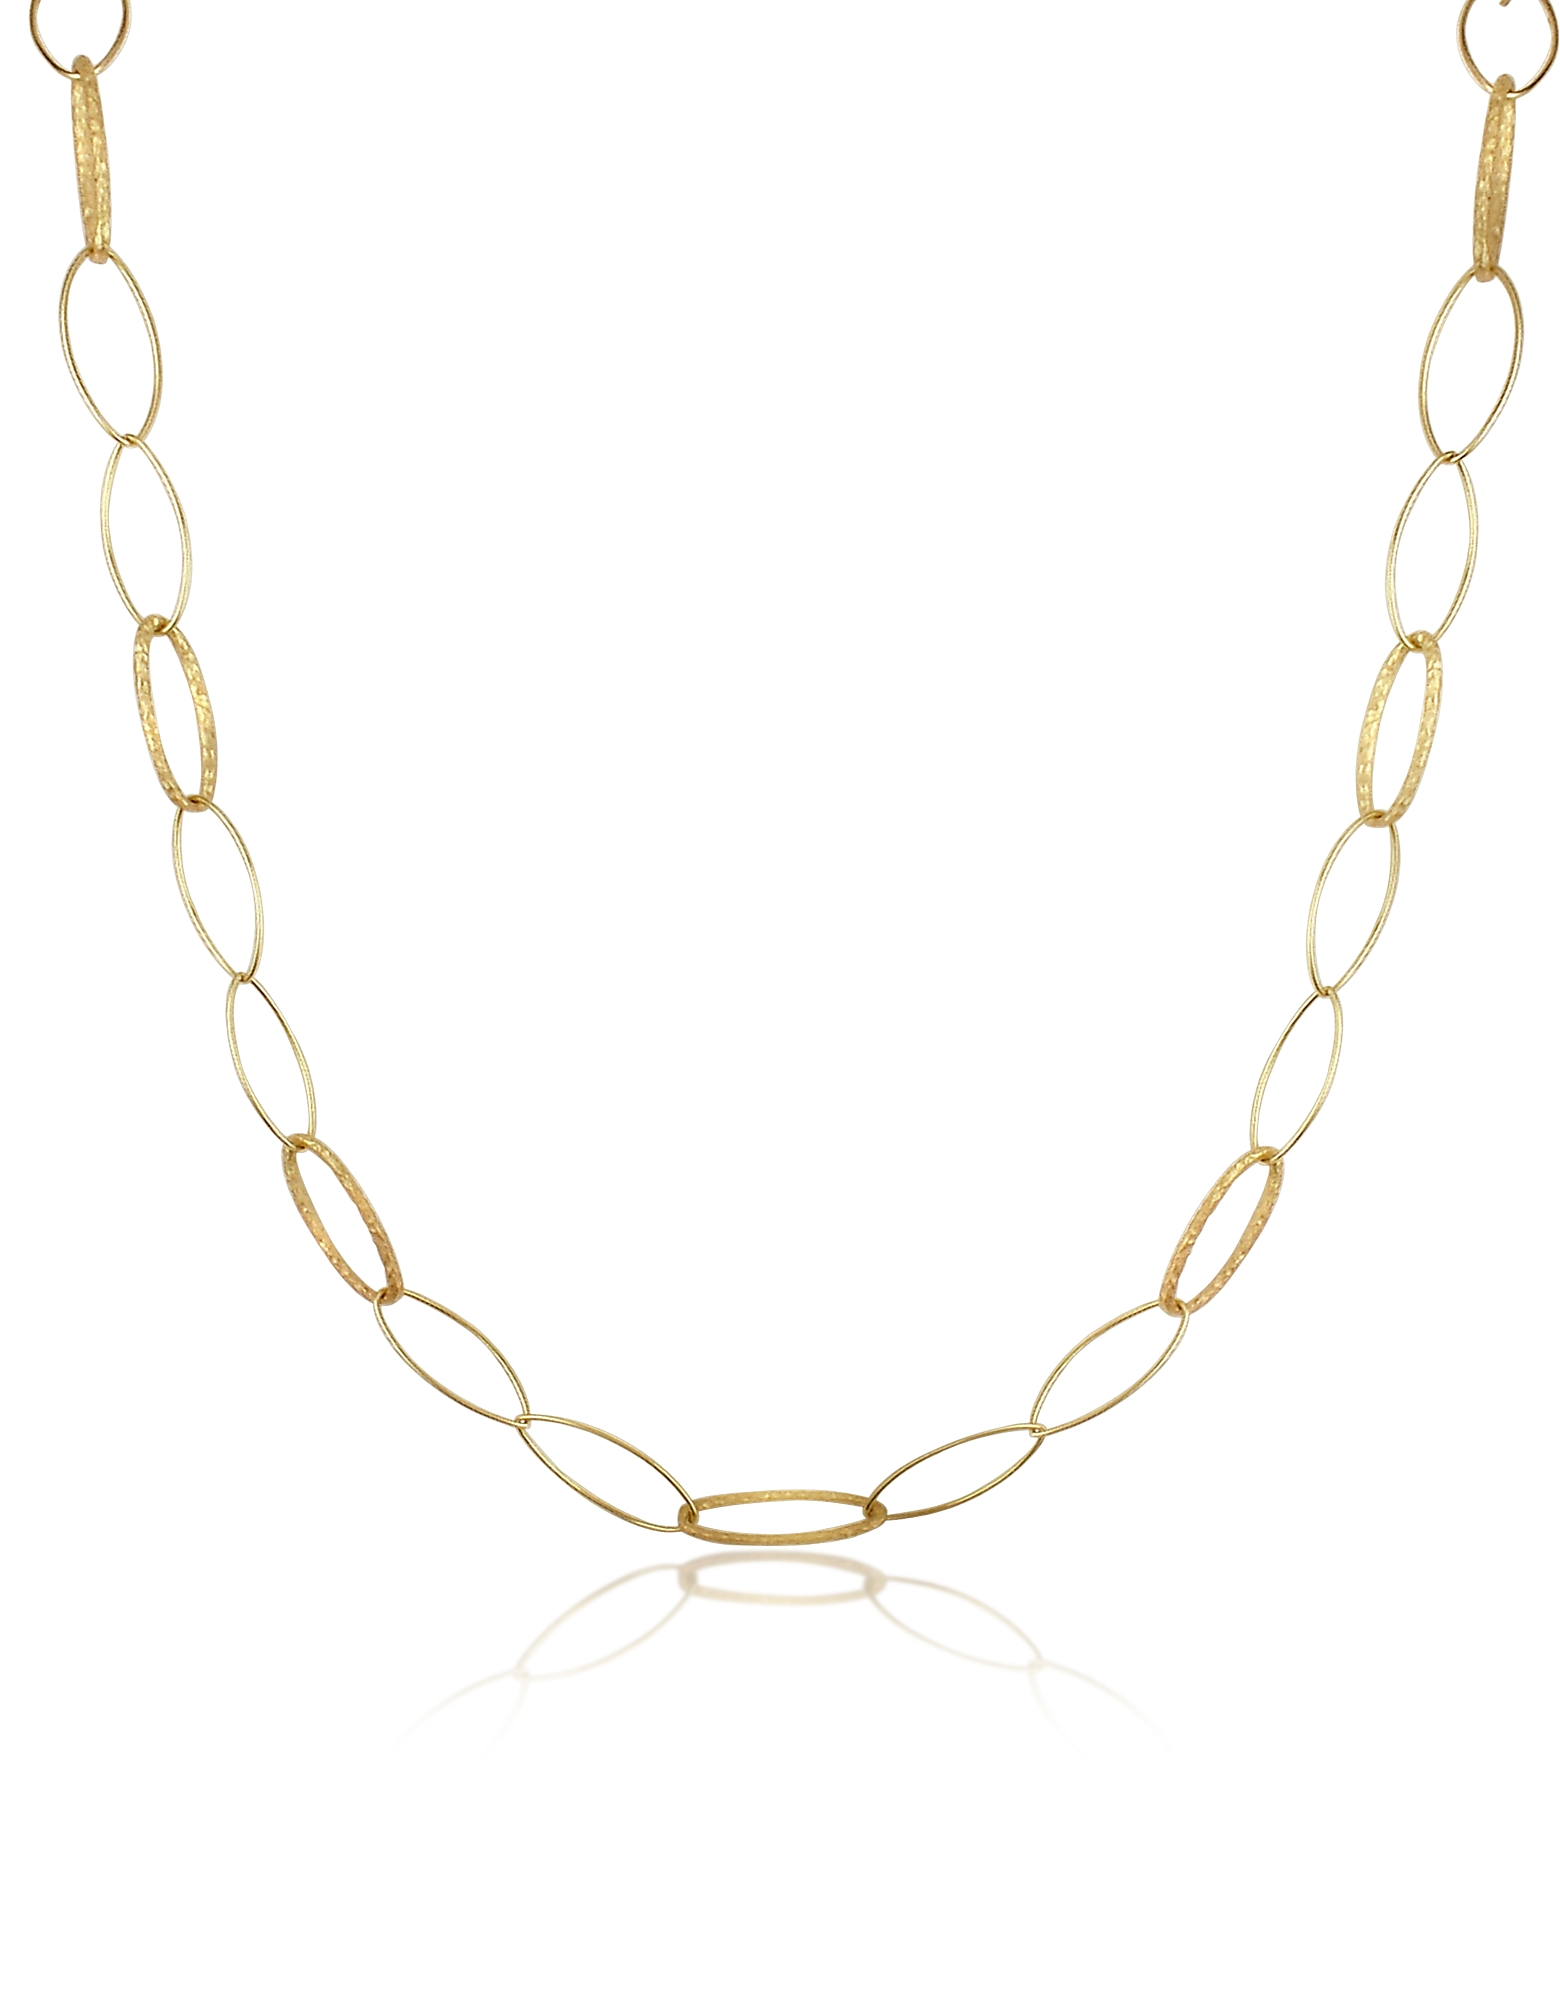 Torrini Necklaces, Marina - 18K Yellow Gold Oval Link Necklace